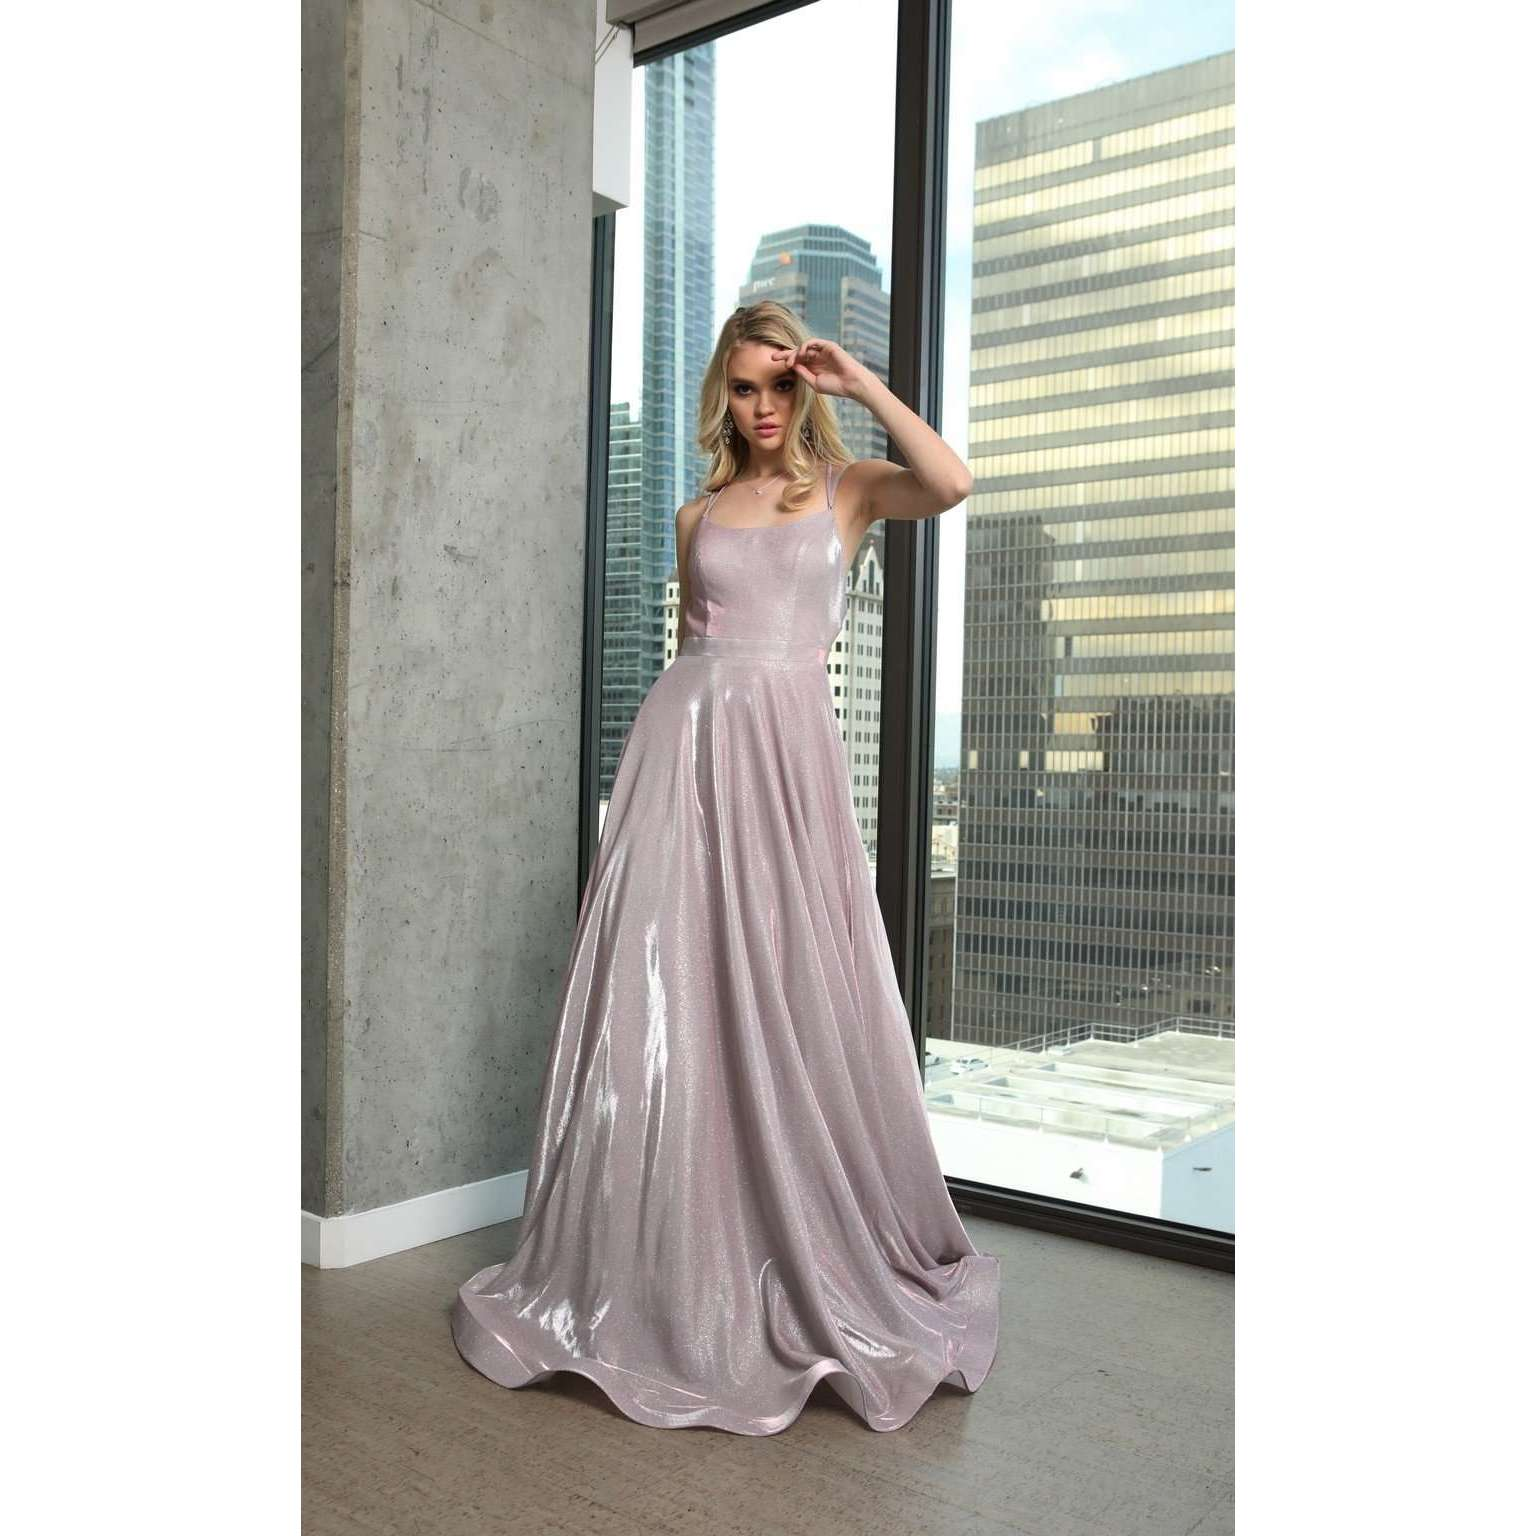 Long Glitter Crepe Prom Dress with Back Cut Outs 203 - Julietdresses